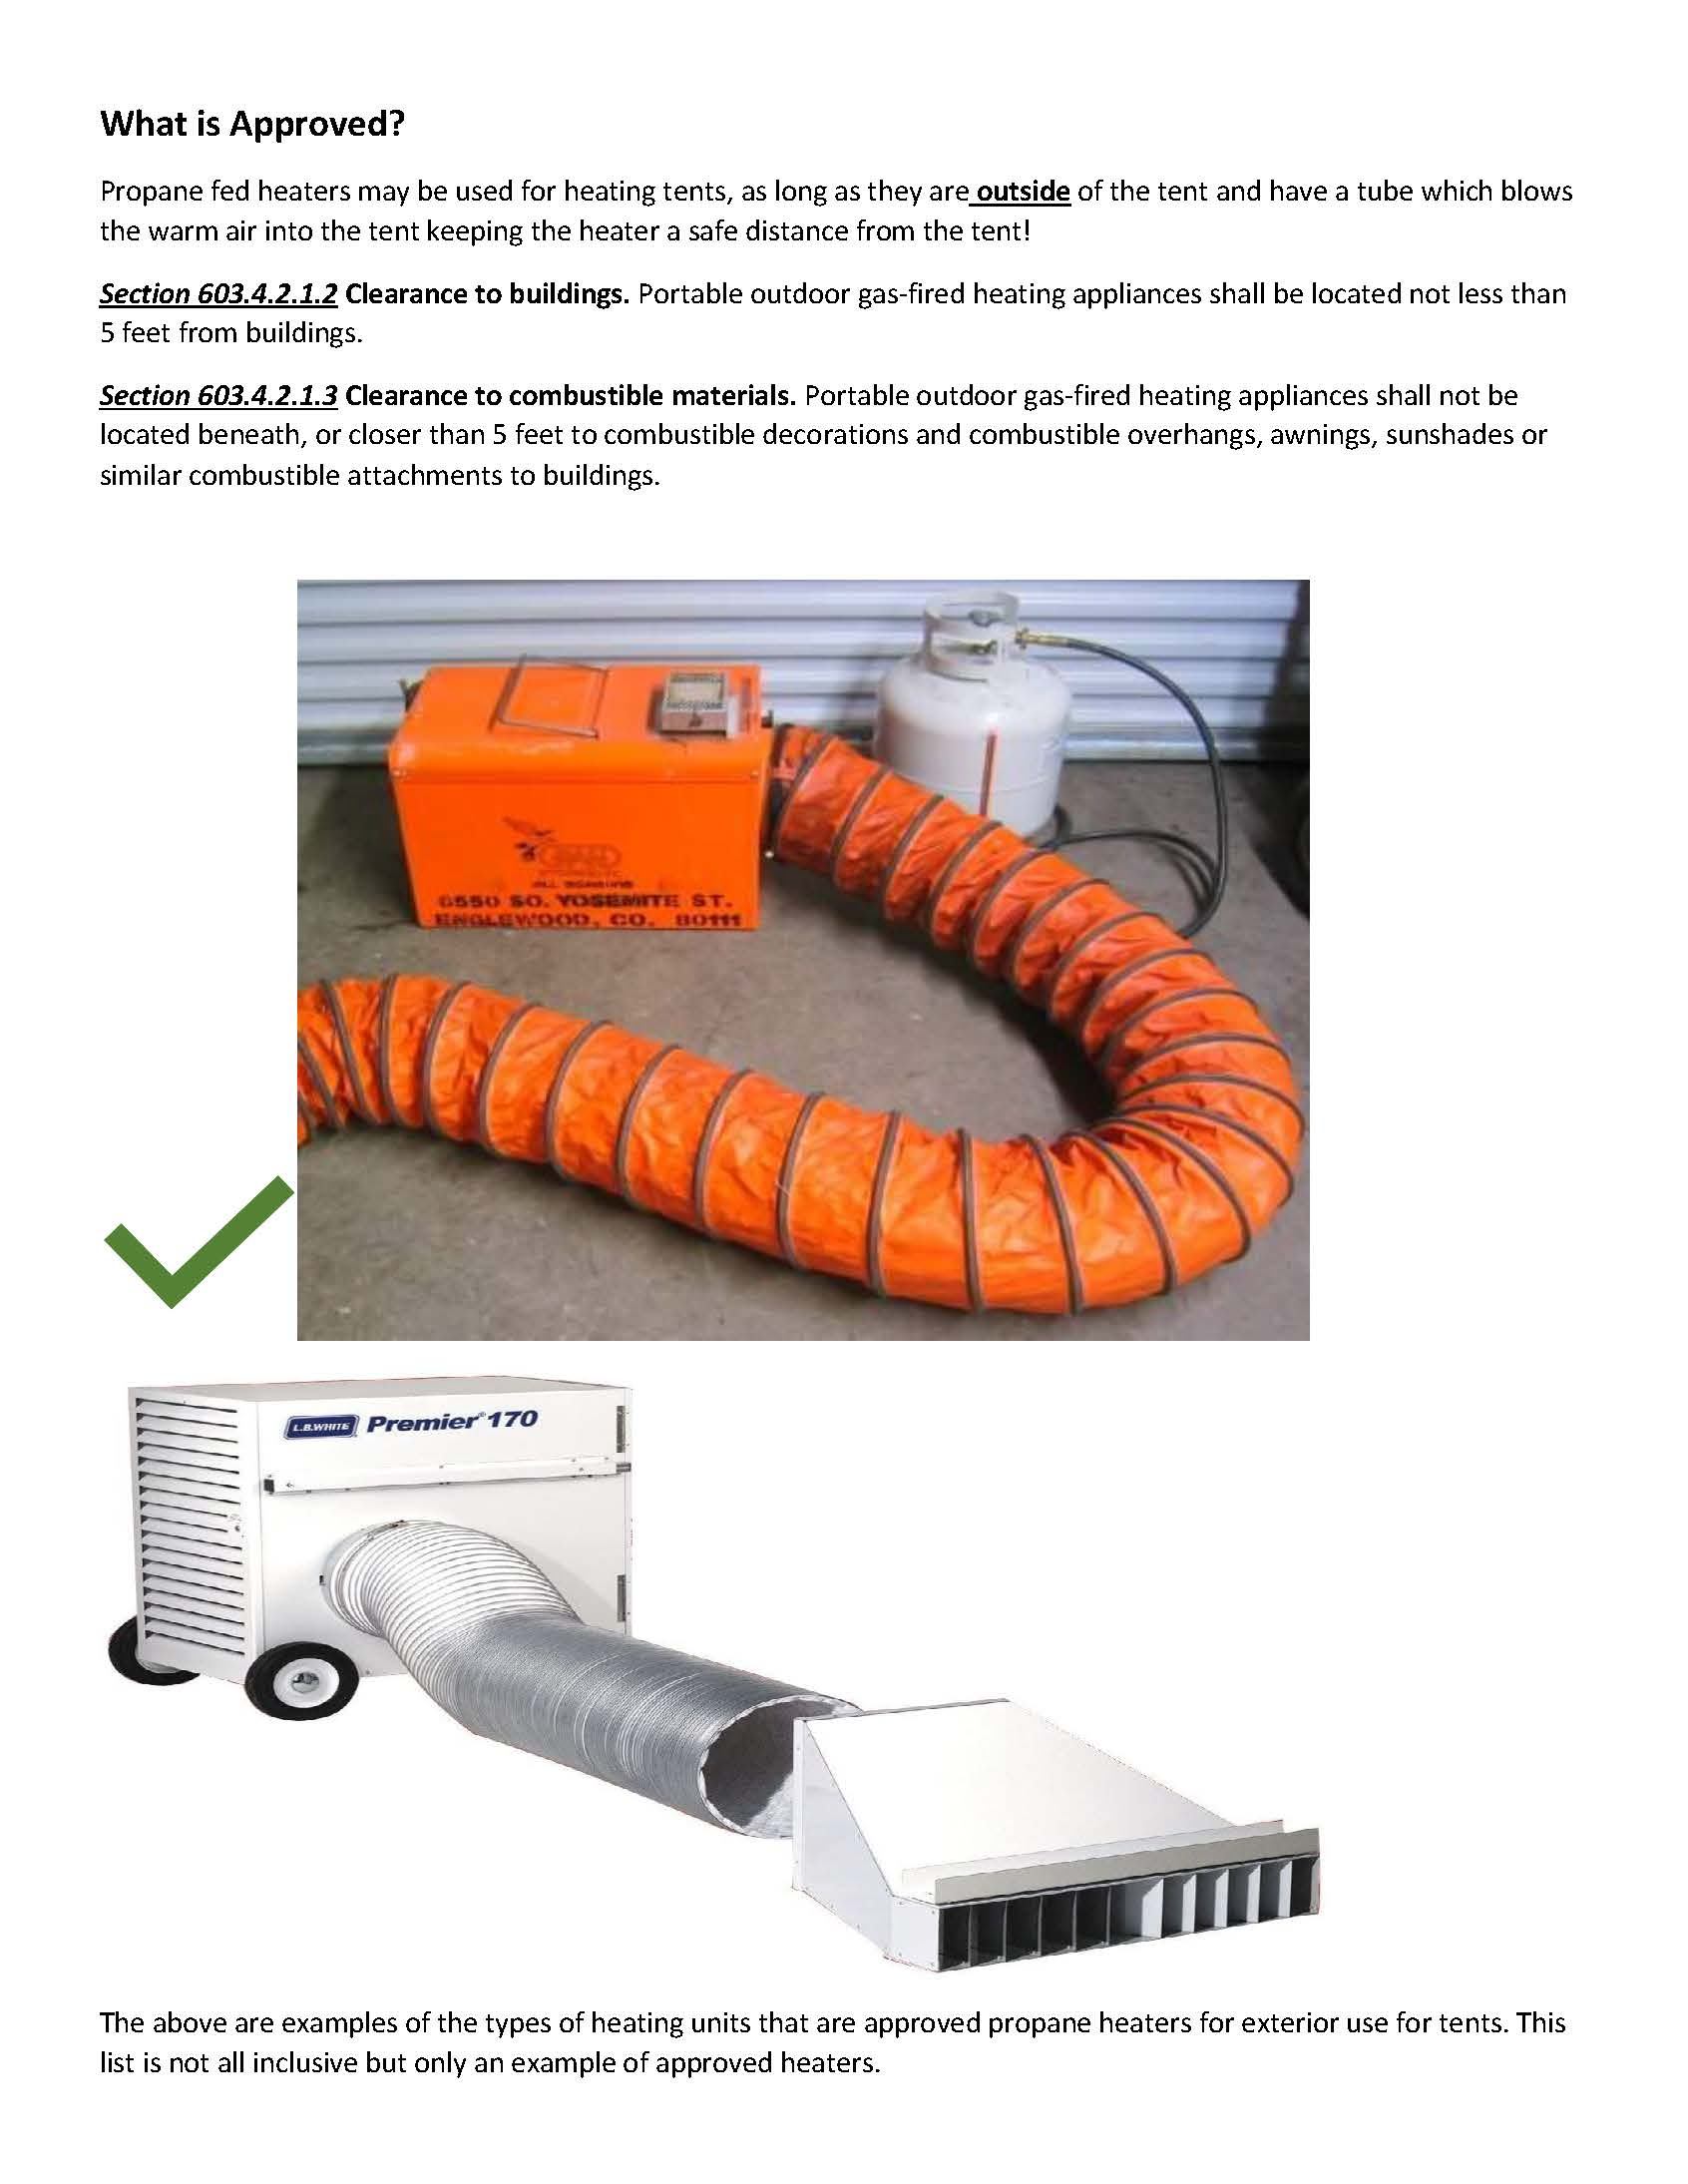 Guidelines for Outdoor Heating for Tents Page 2 (JPG)